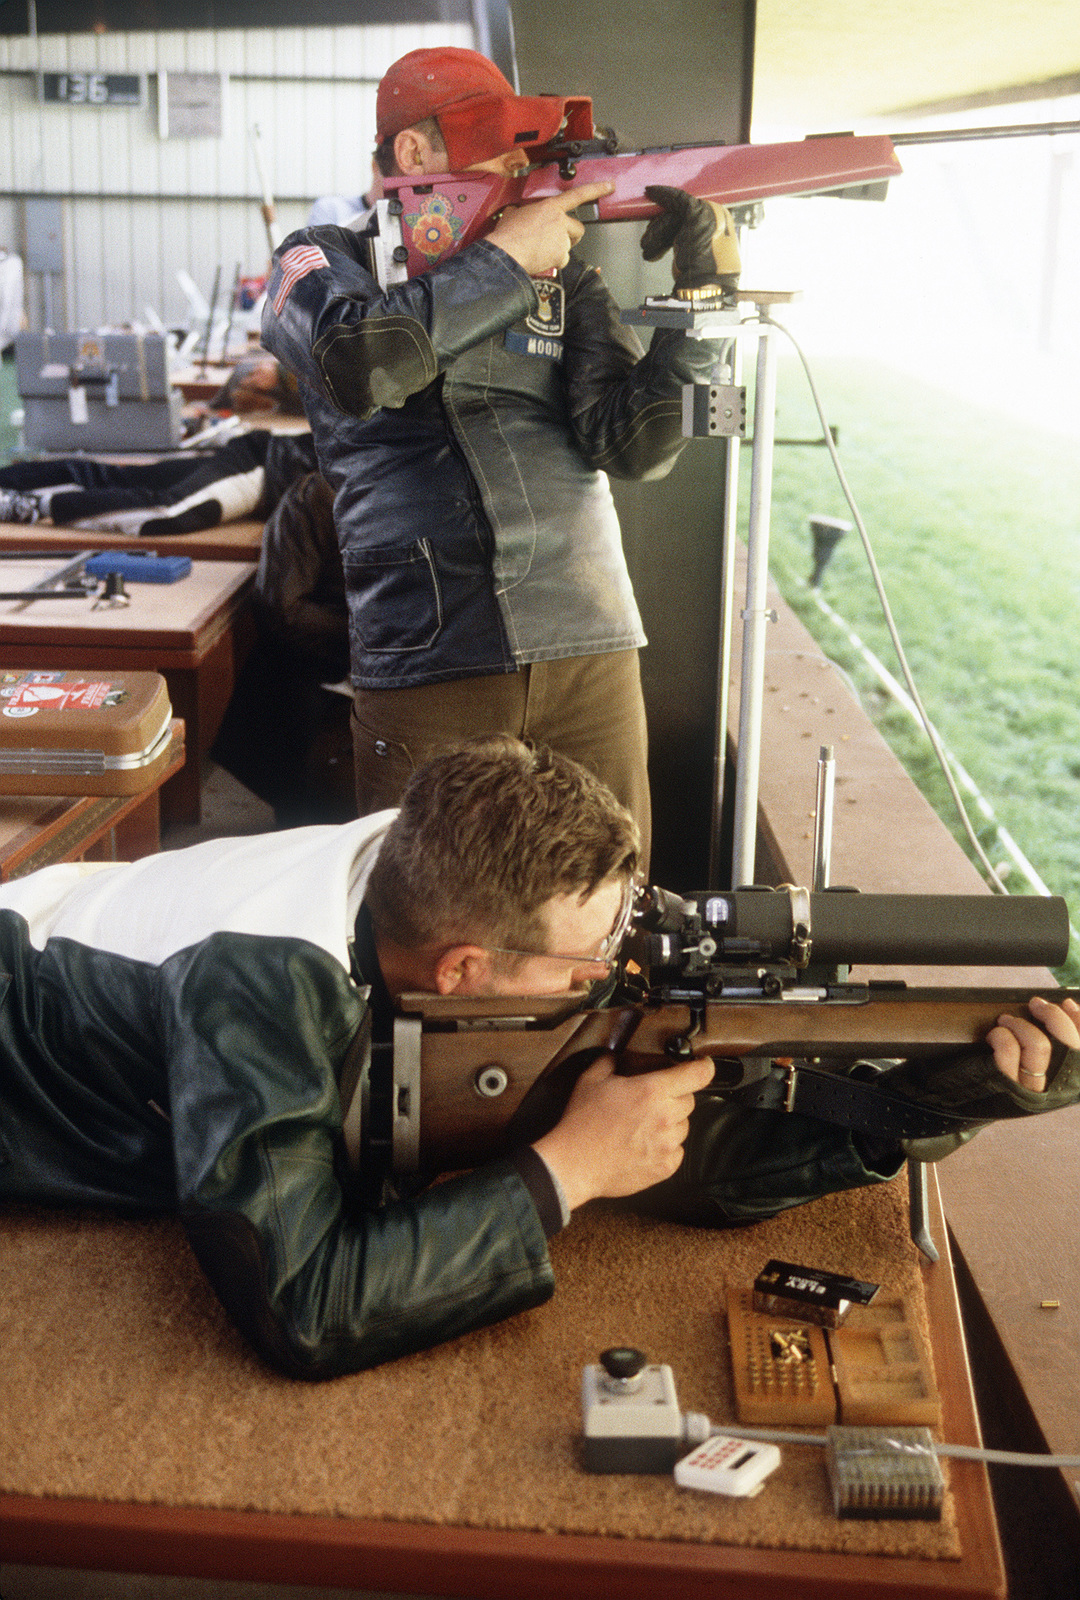 MASTER Sergeant (MSGT) Lynn Links, 64th Fighter Training Wing, Reese Air Force Base, Texas, and Major (MAJ) Howard Moody, Headquarters Tactical Air Command, Langley Air Force Base, Virginia, compete as members of the Air Force shooting team in the qualifications for the 1984 23rd Summer Olympics Shooting Team